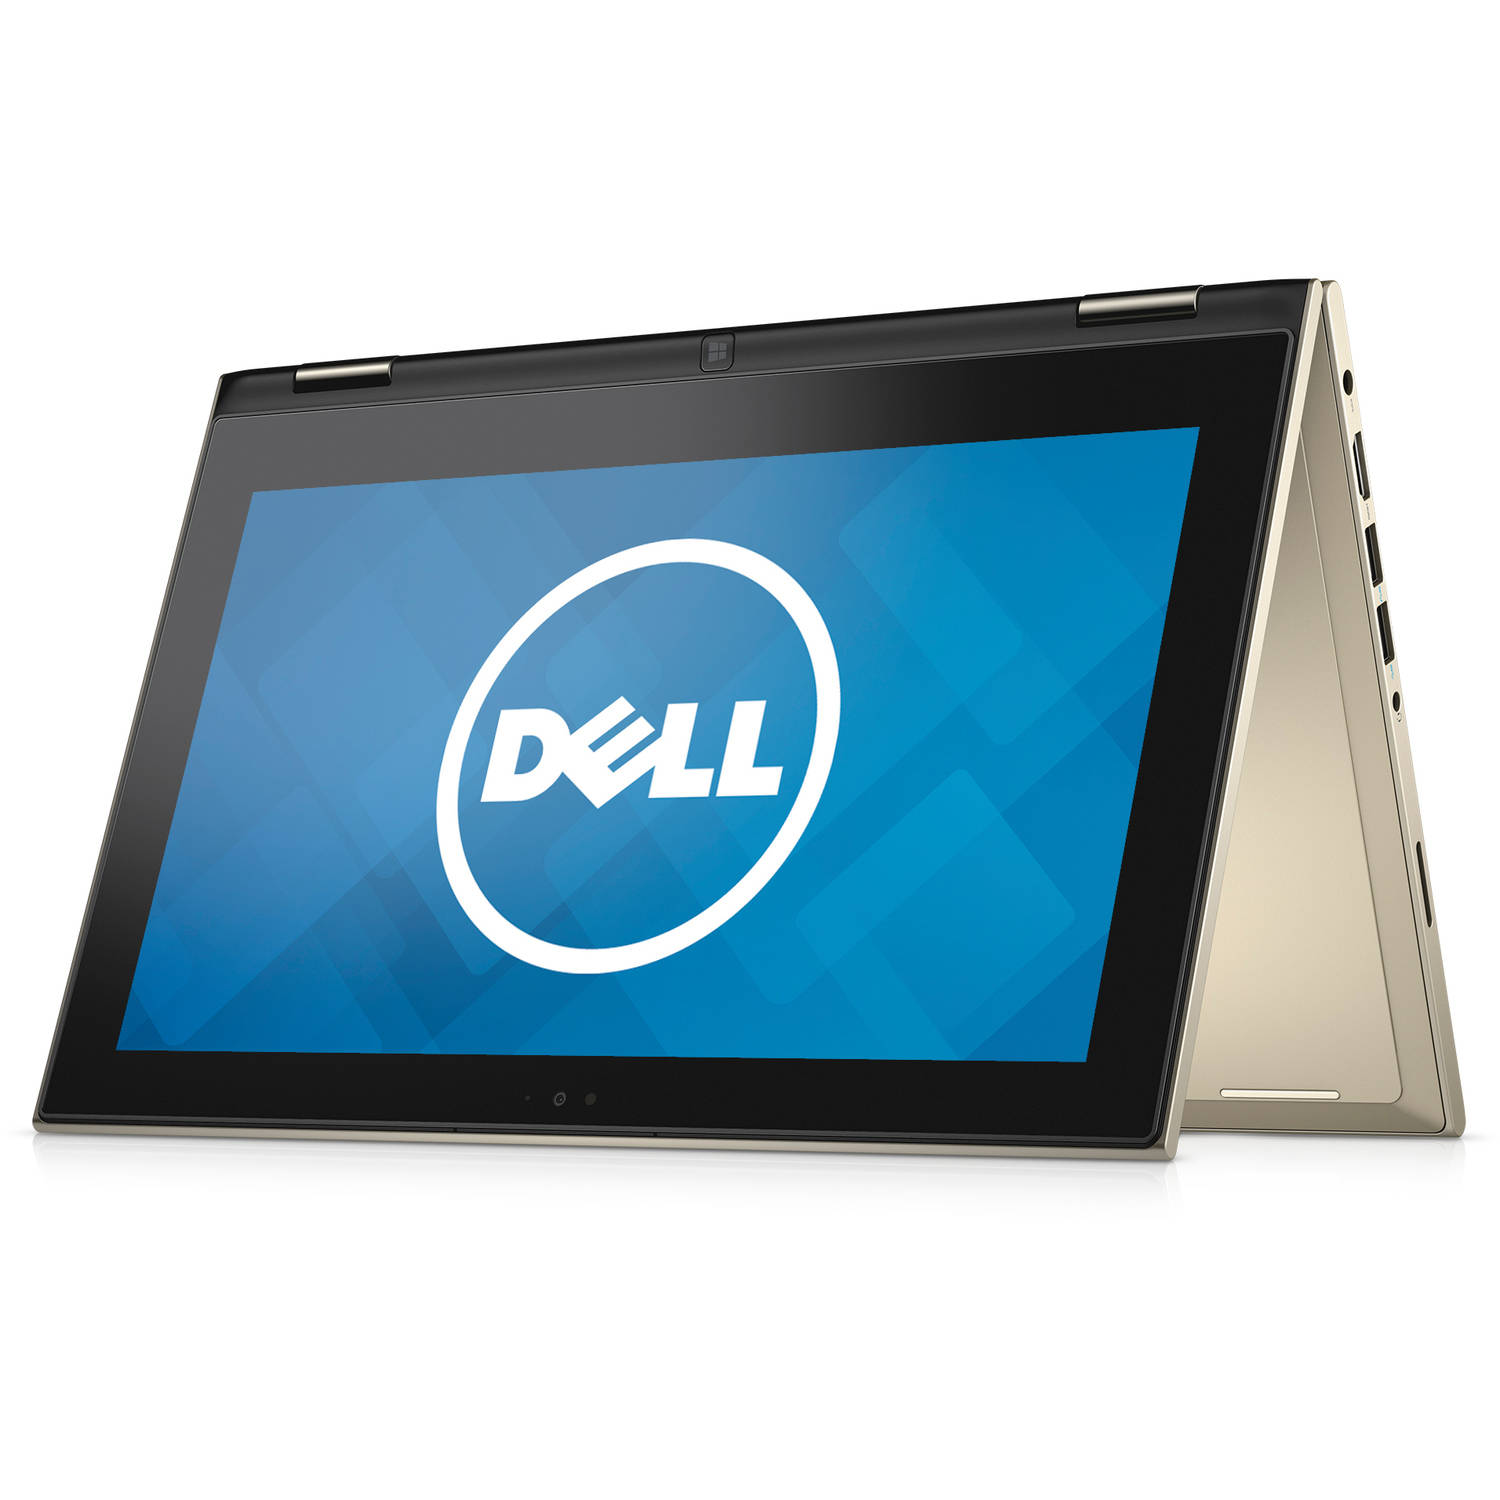 "Dell Inspiron 11 3000 11.6"" Laptop, Touchscreen, 2-in-1, Windows 10 Home, Intel Pentium N3700 Processor, 4GB RAM, 128GB Solid State Drive"